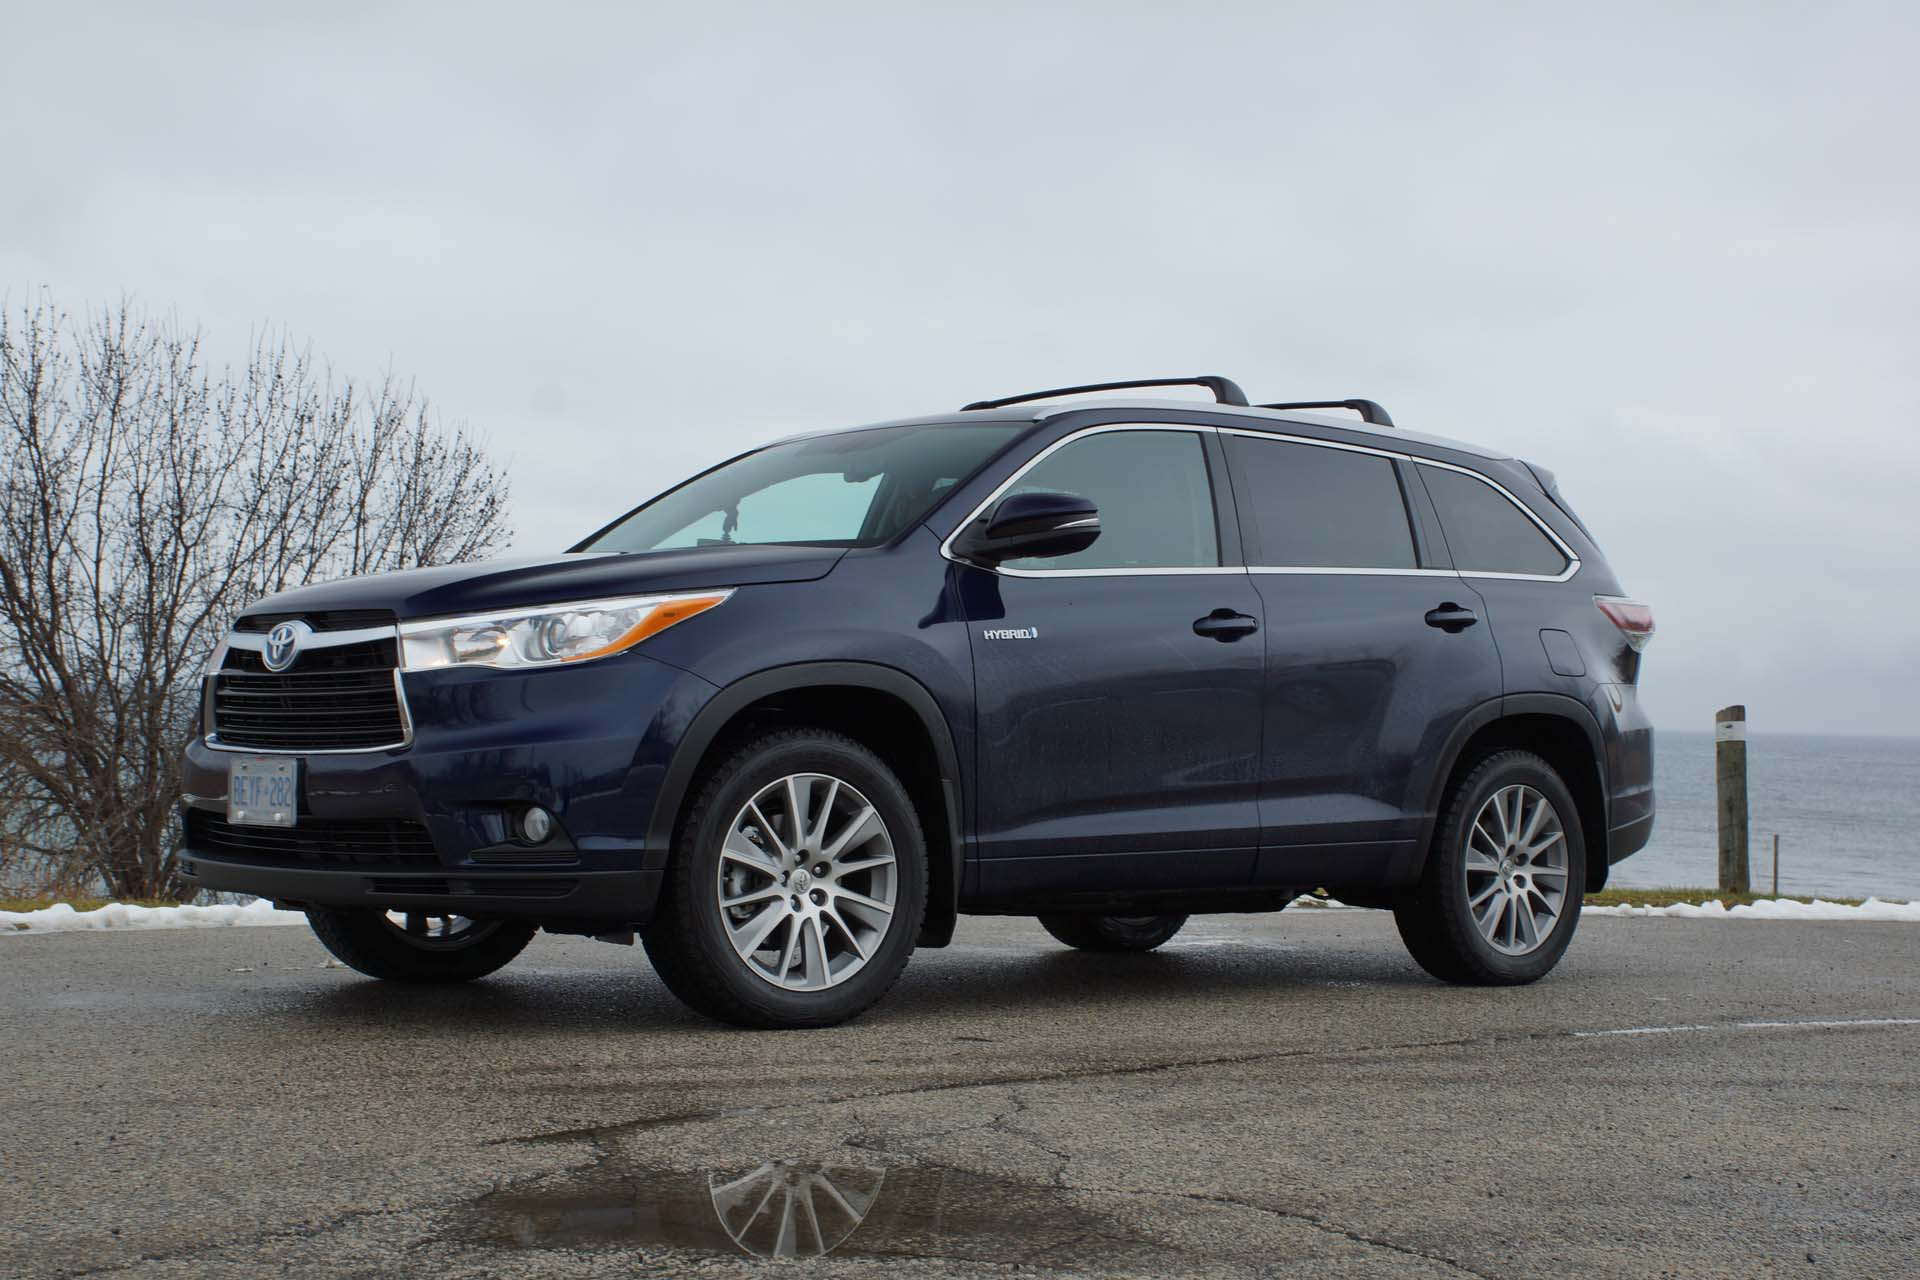 easy hybrid going with efficiency car platinum msrp limited photo article reviews toyota highlander drive price review